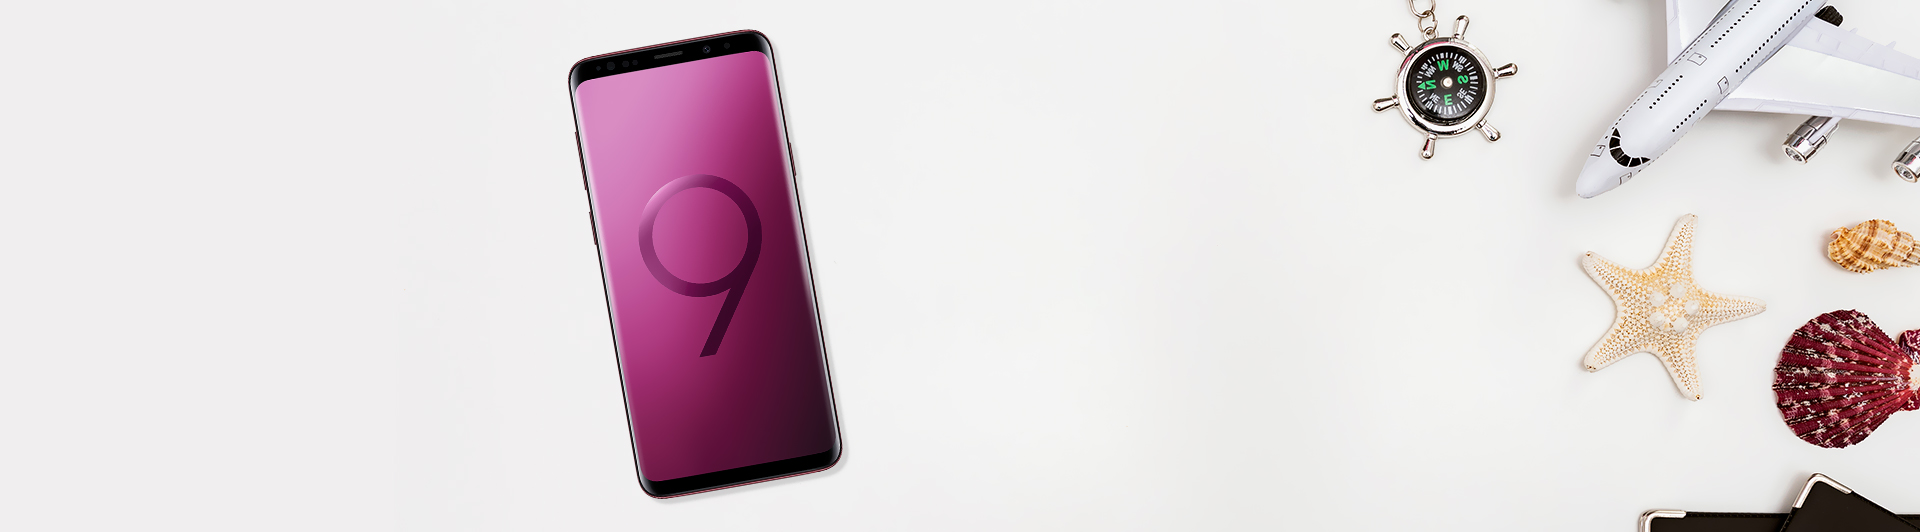 SAMSUNG GALAXY S9 PLUS 64GB VANG ĐỎ